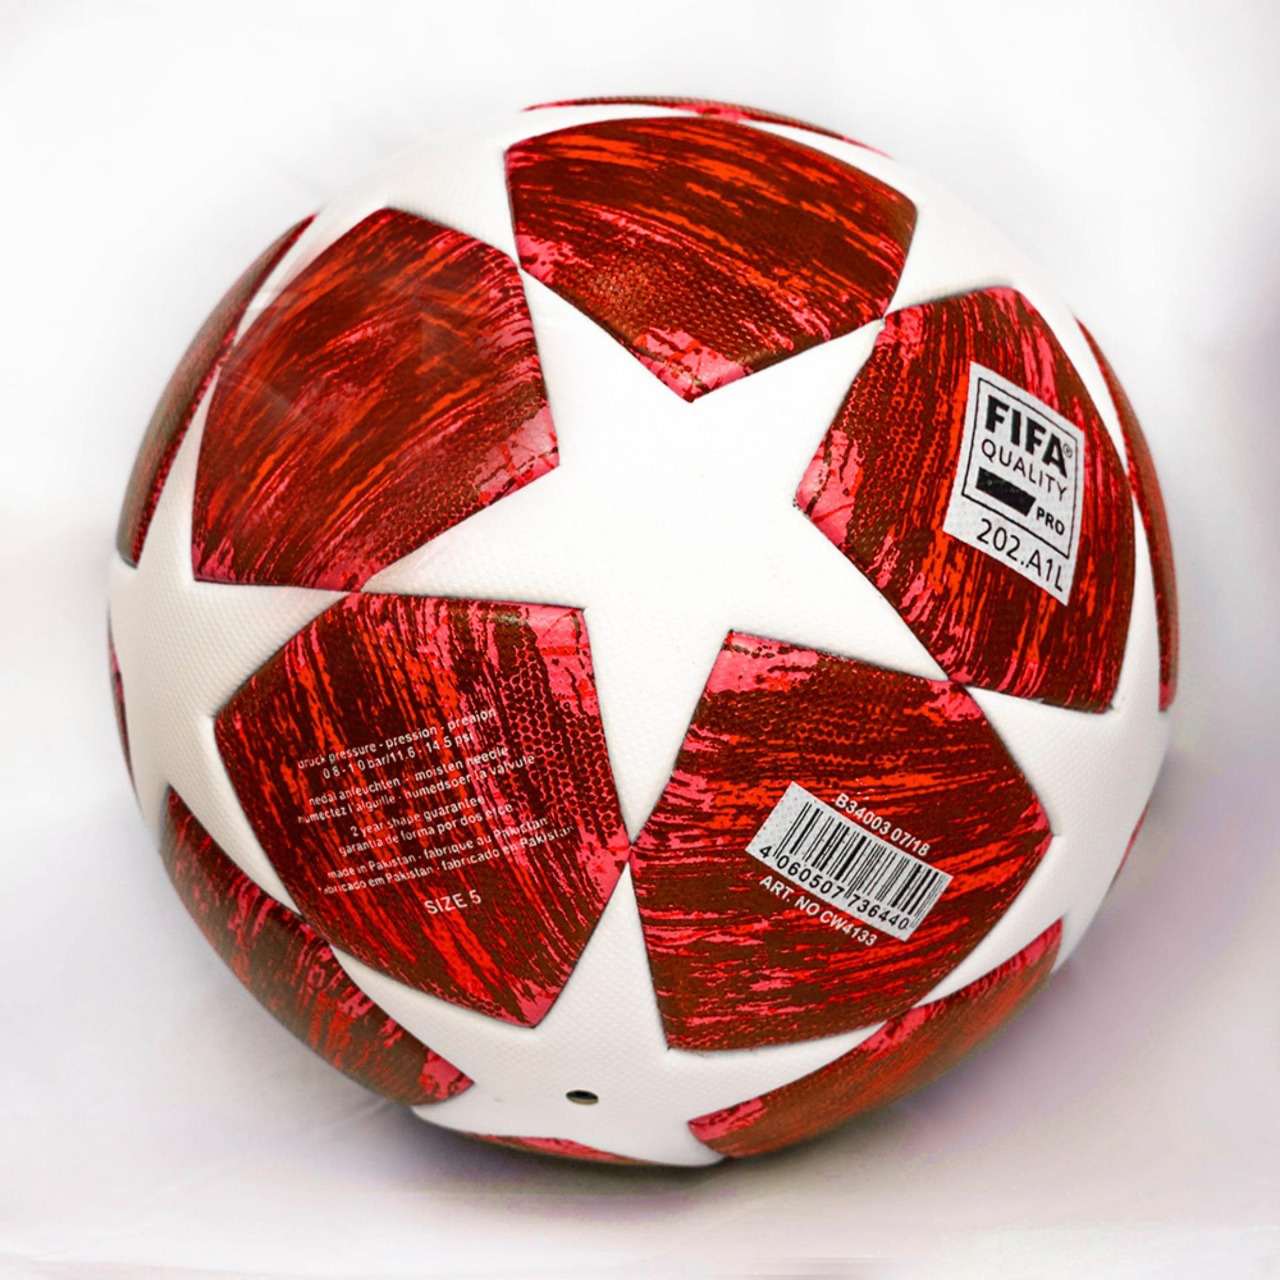 UEFA Champions League (RED EDITION) Thermal Moulded Football PE-512